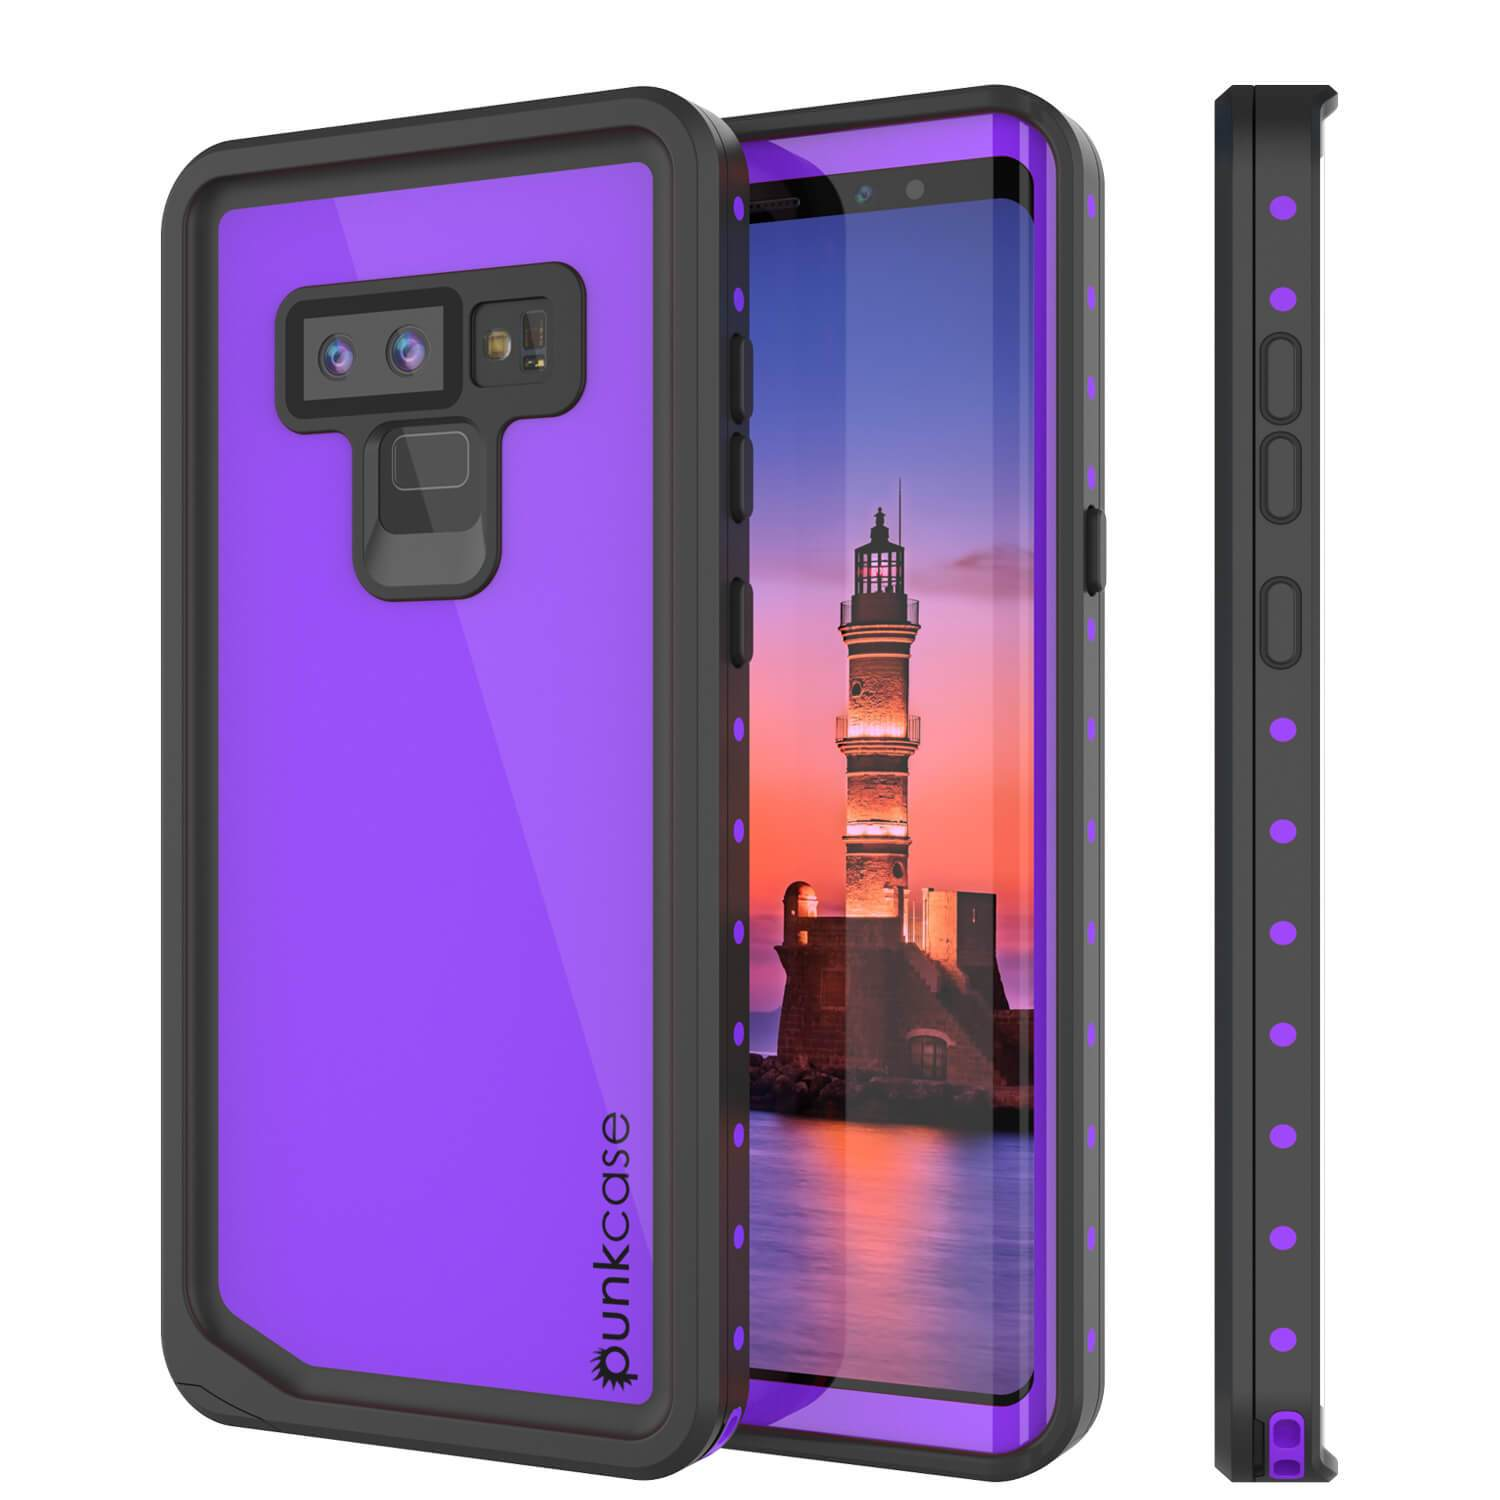 Galaxy Note 9 Waterproof Case PunkCase StudStar Purple Thin 6.6ft Underwater Shock/Snow Proof